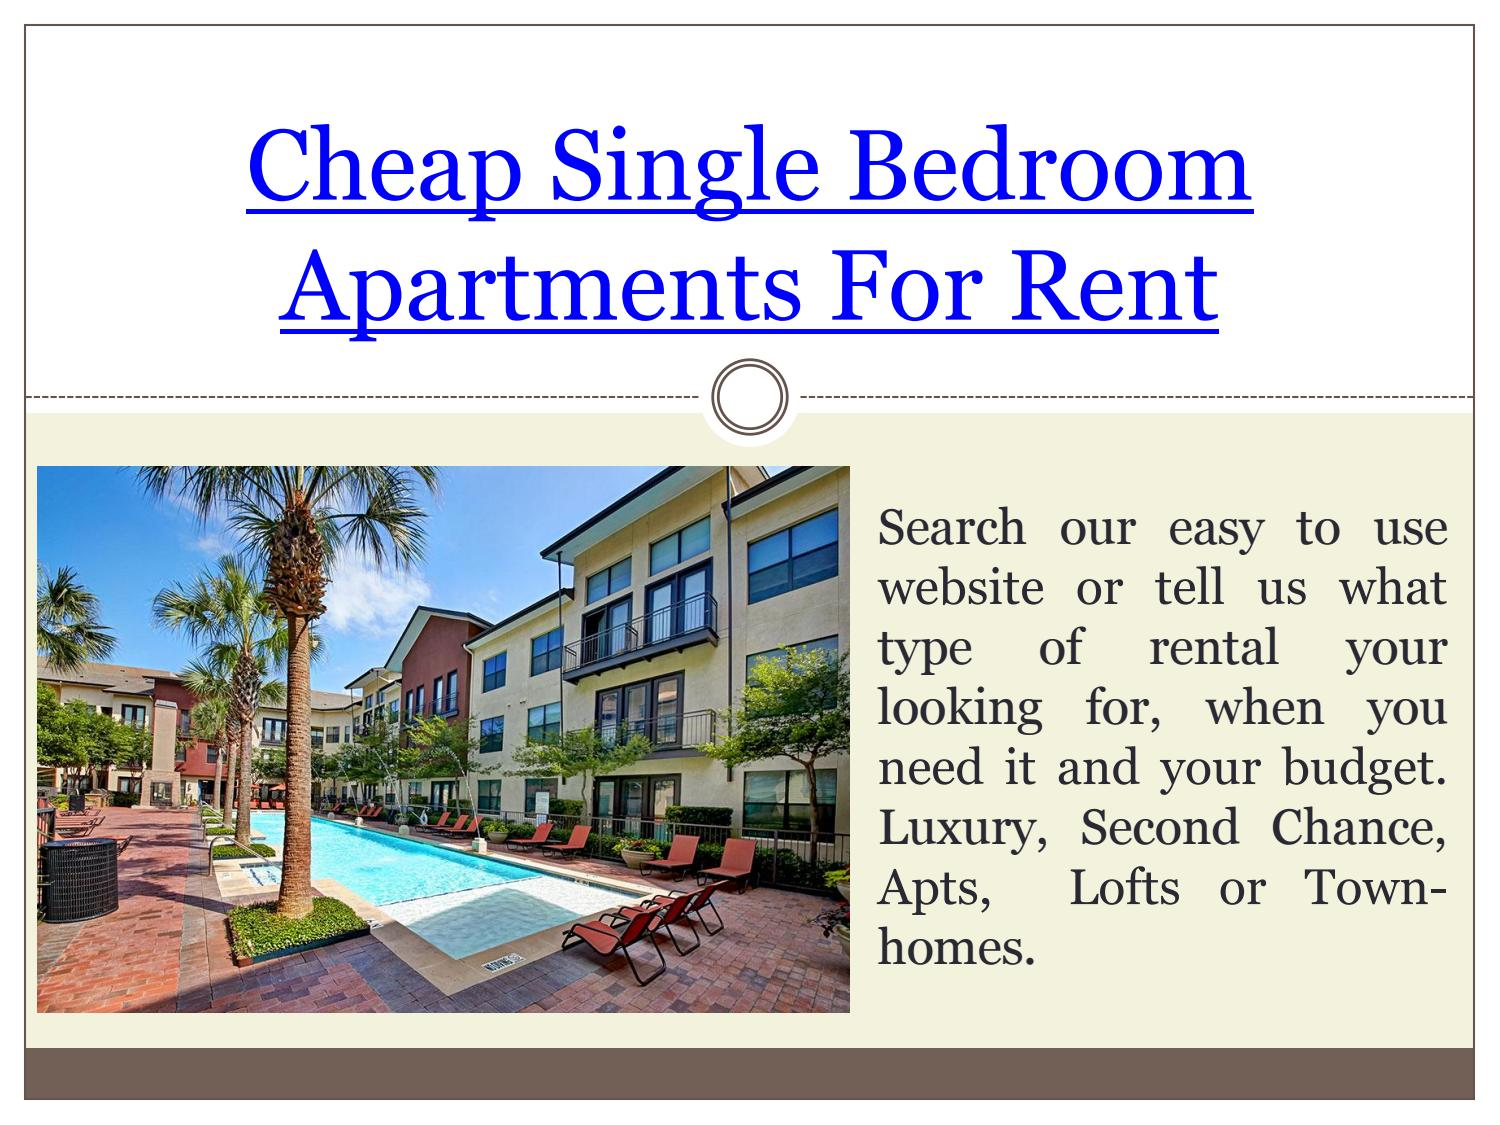 Apartments for rent near me under 500 by Apartments for ...